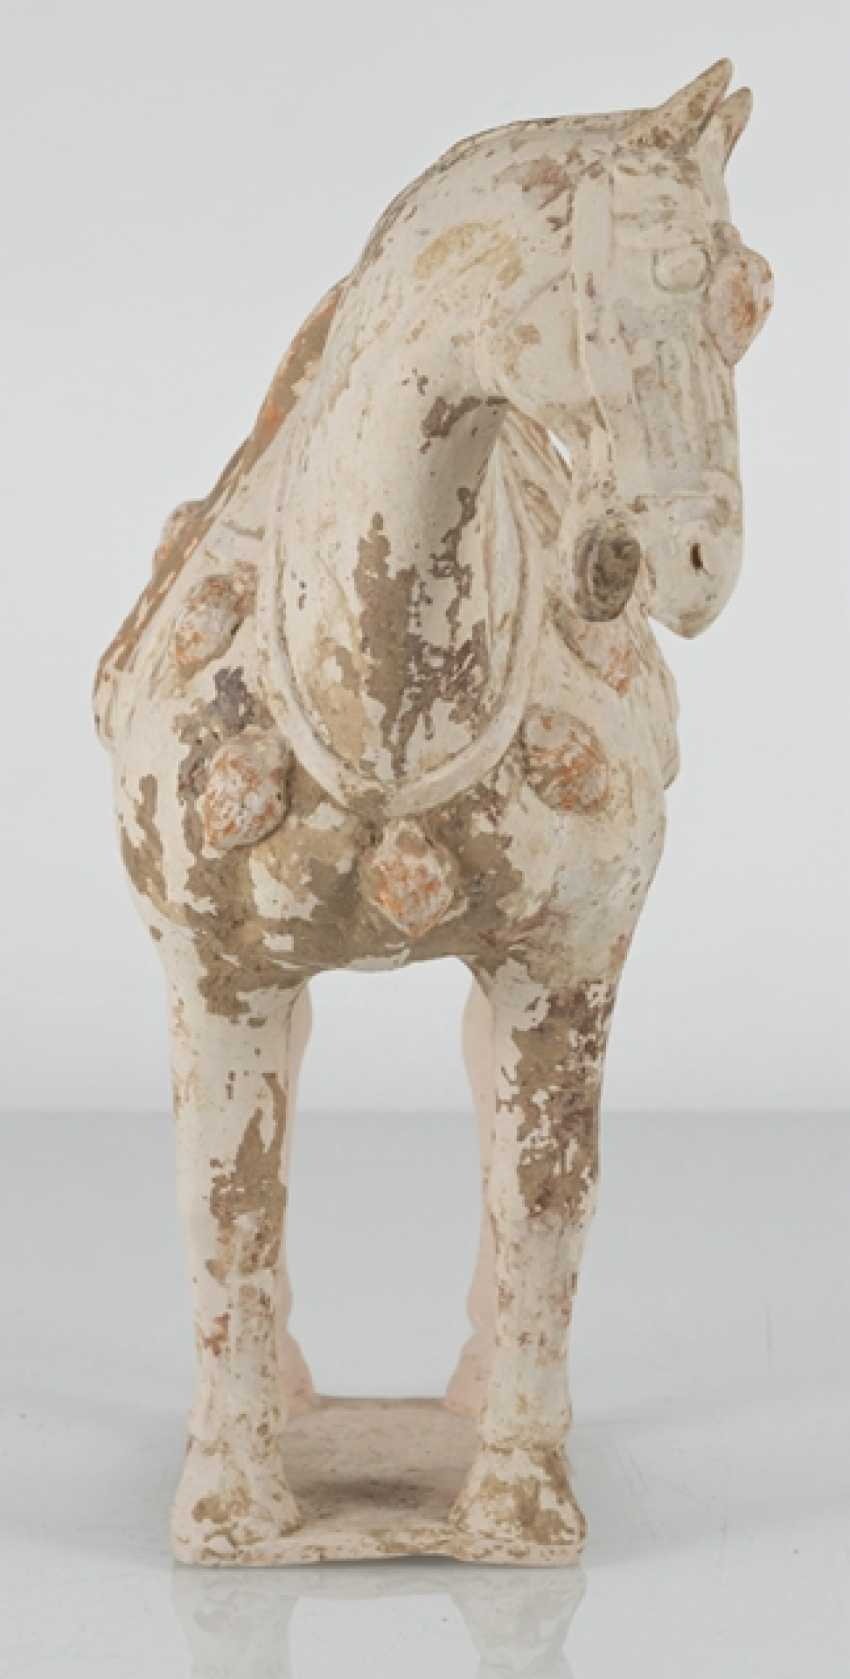 Unglazed pottery model of a standing horse - photo 4